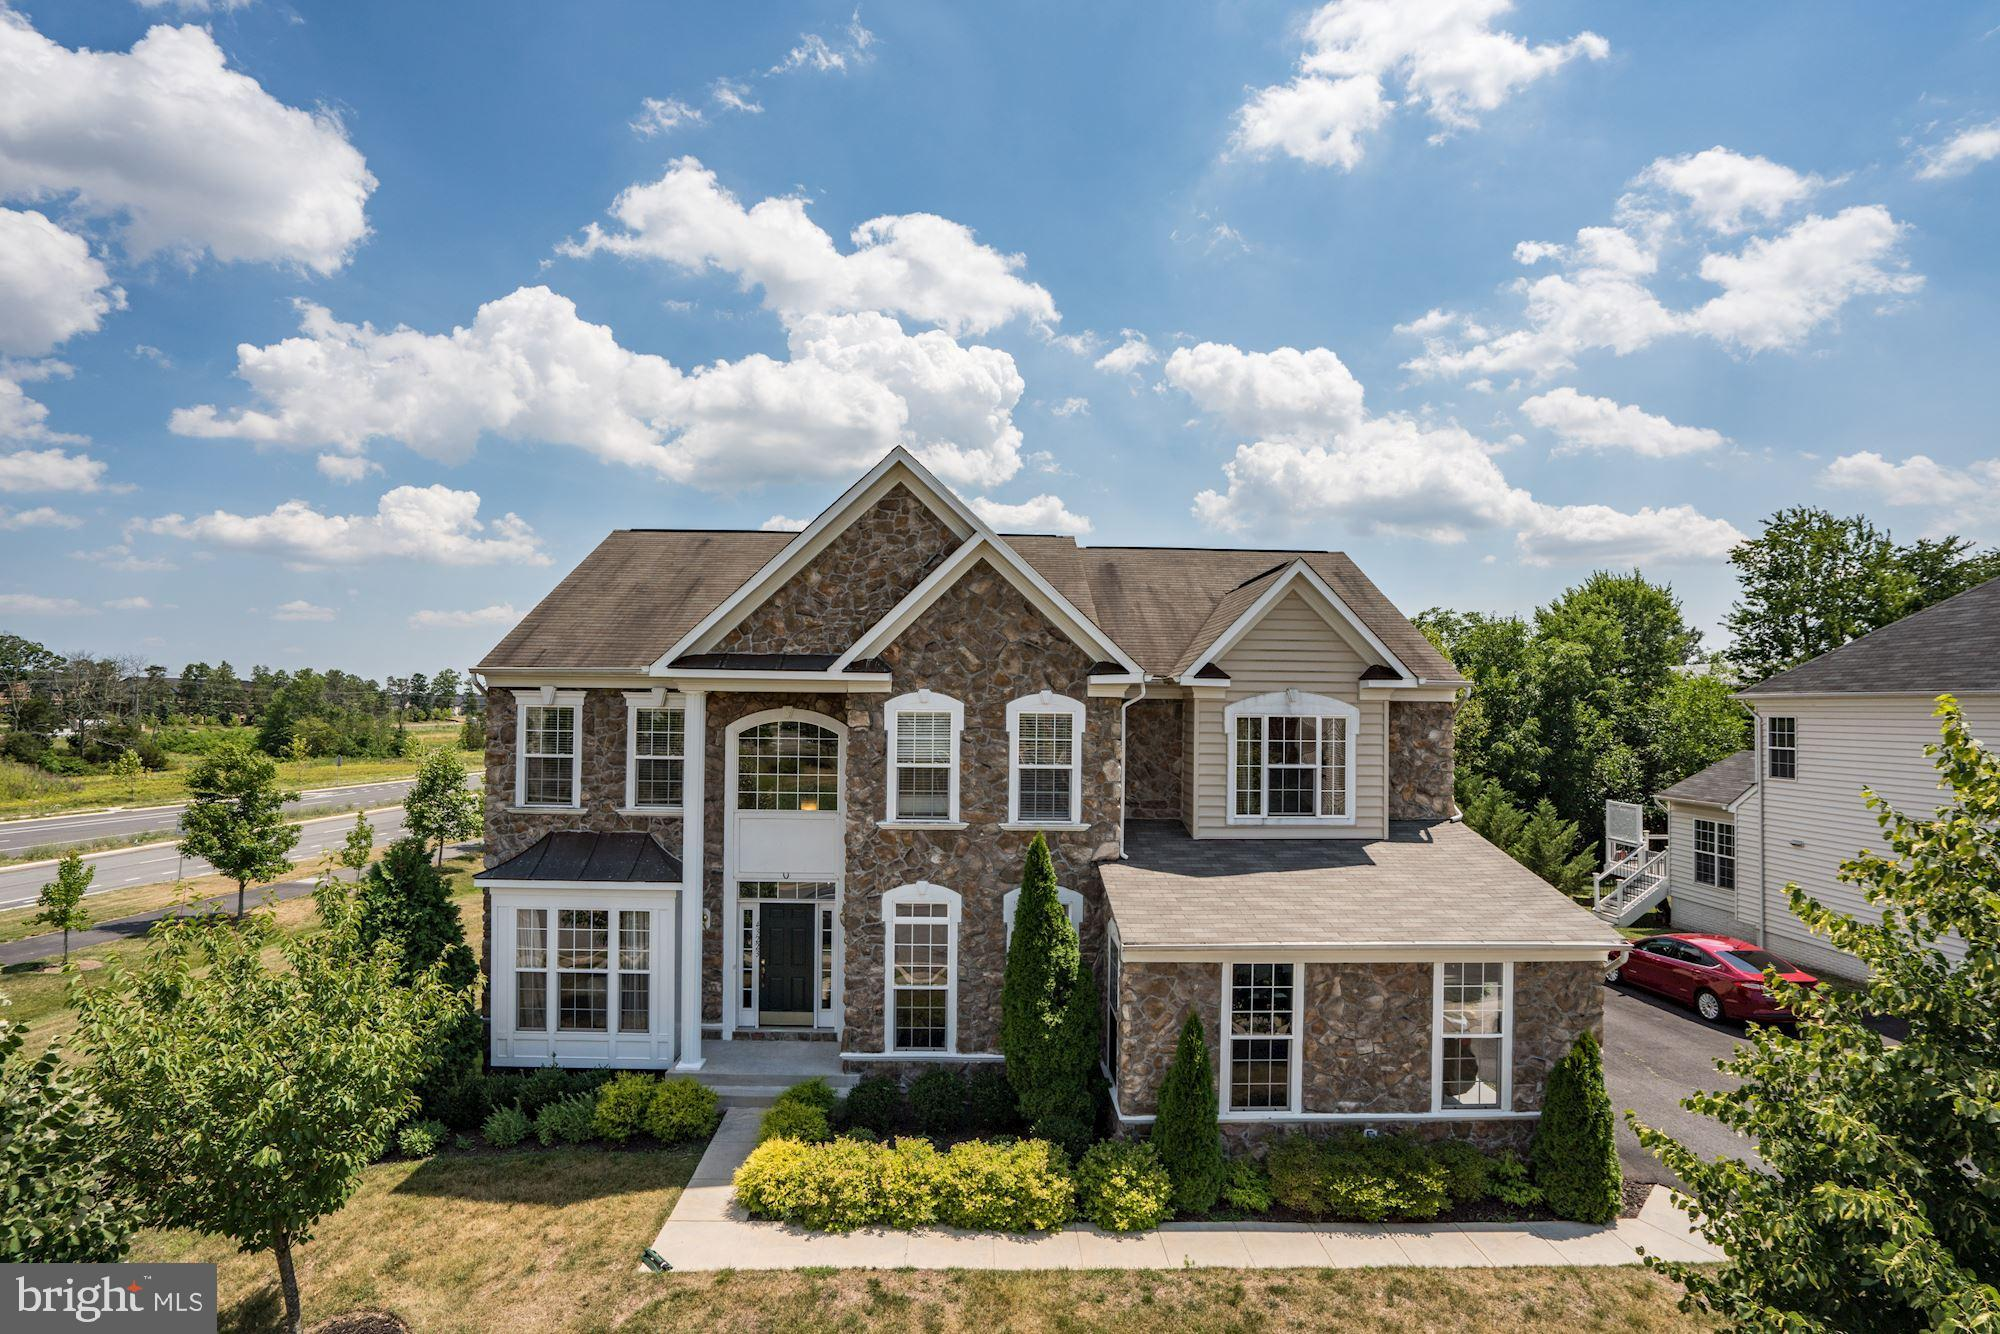 Open Sunday 7/14 from 1-4. Beautiful Stone Front home with 5 bedrooms, 4.5 baths, 2 car side load garage. Over 5330 SF total finished area on all levels; 3683 SF on above grade; 2-story Foyer; Elegant family room with coffered ceiling and fireplace; Office room on main level; upgraded hardwood floors; Built-in speakers on all levels; Gourmet kitchen with stainless steel appliances; Dual staircase; Sunroom off kitchen; Composite deck; Large Master suite with sitting room and 2 walk-in closets; Luxury master bath; Composite deck; Backs to trees; Basement has large recreation room, gym room, den, and storage area, Media room in the basement converted to kids play area; Walkable distance to Moorefield Station Elementary school; Close to Home Depot, Loudoun Station and Brambleton town center; About a mile drive to Toll Road and Future silver line metro station which is coming up in 2020.